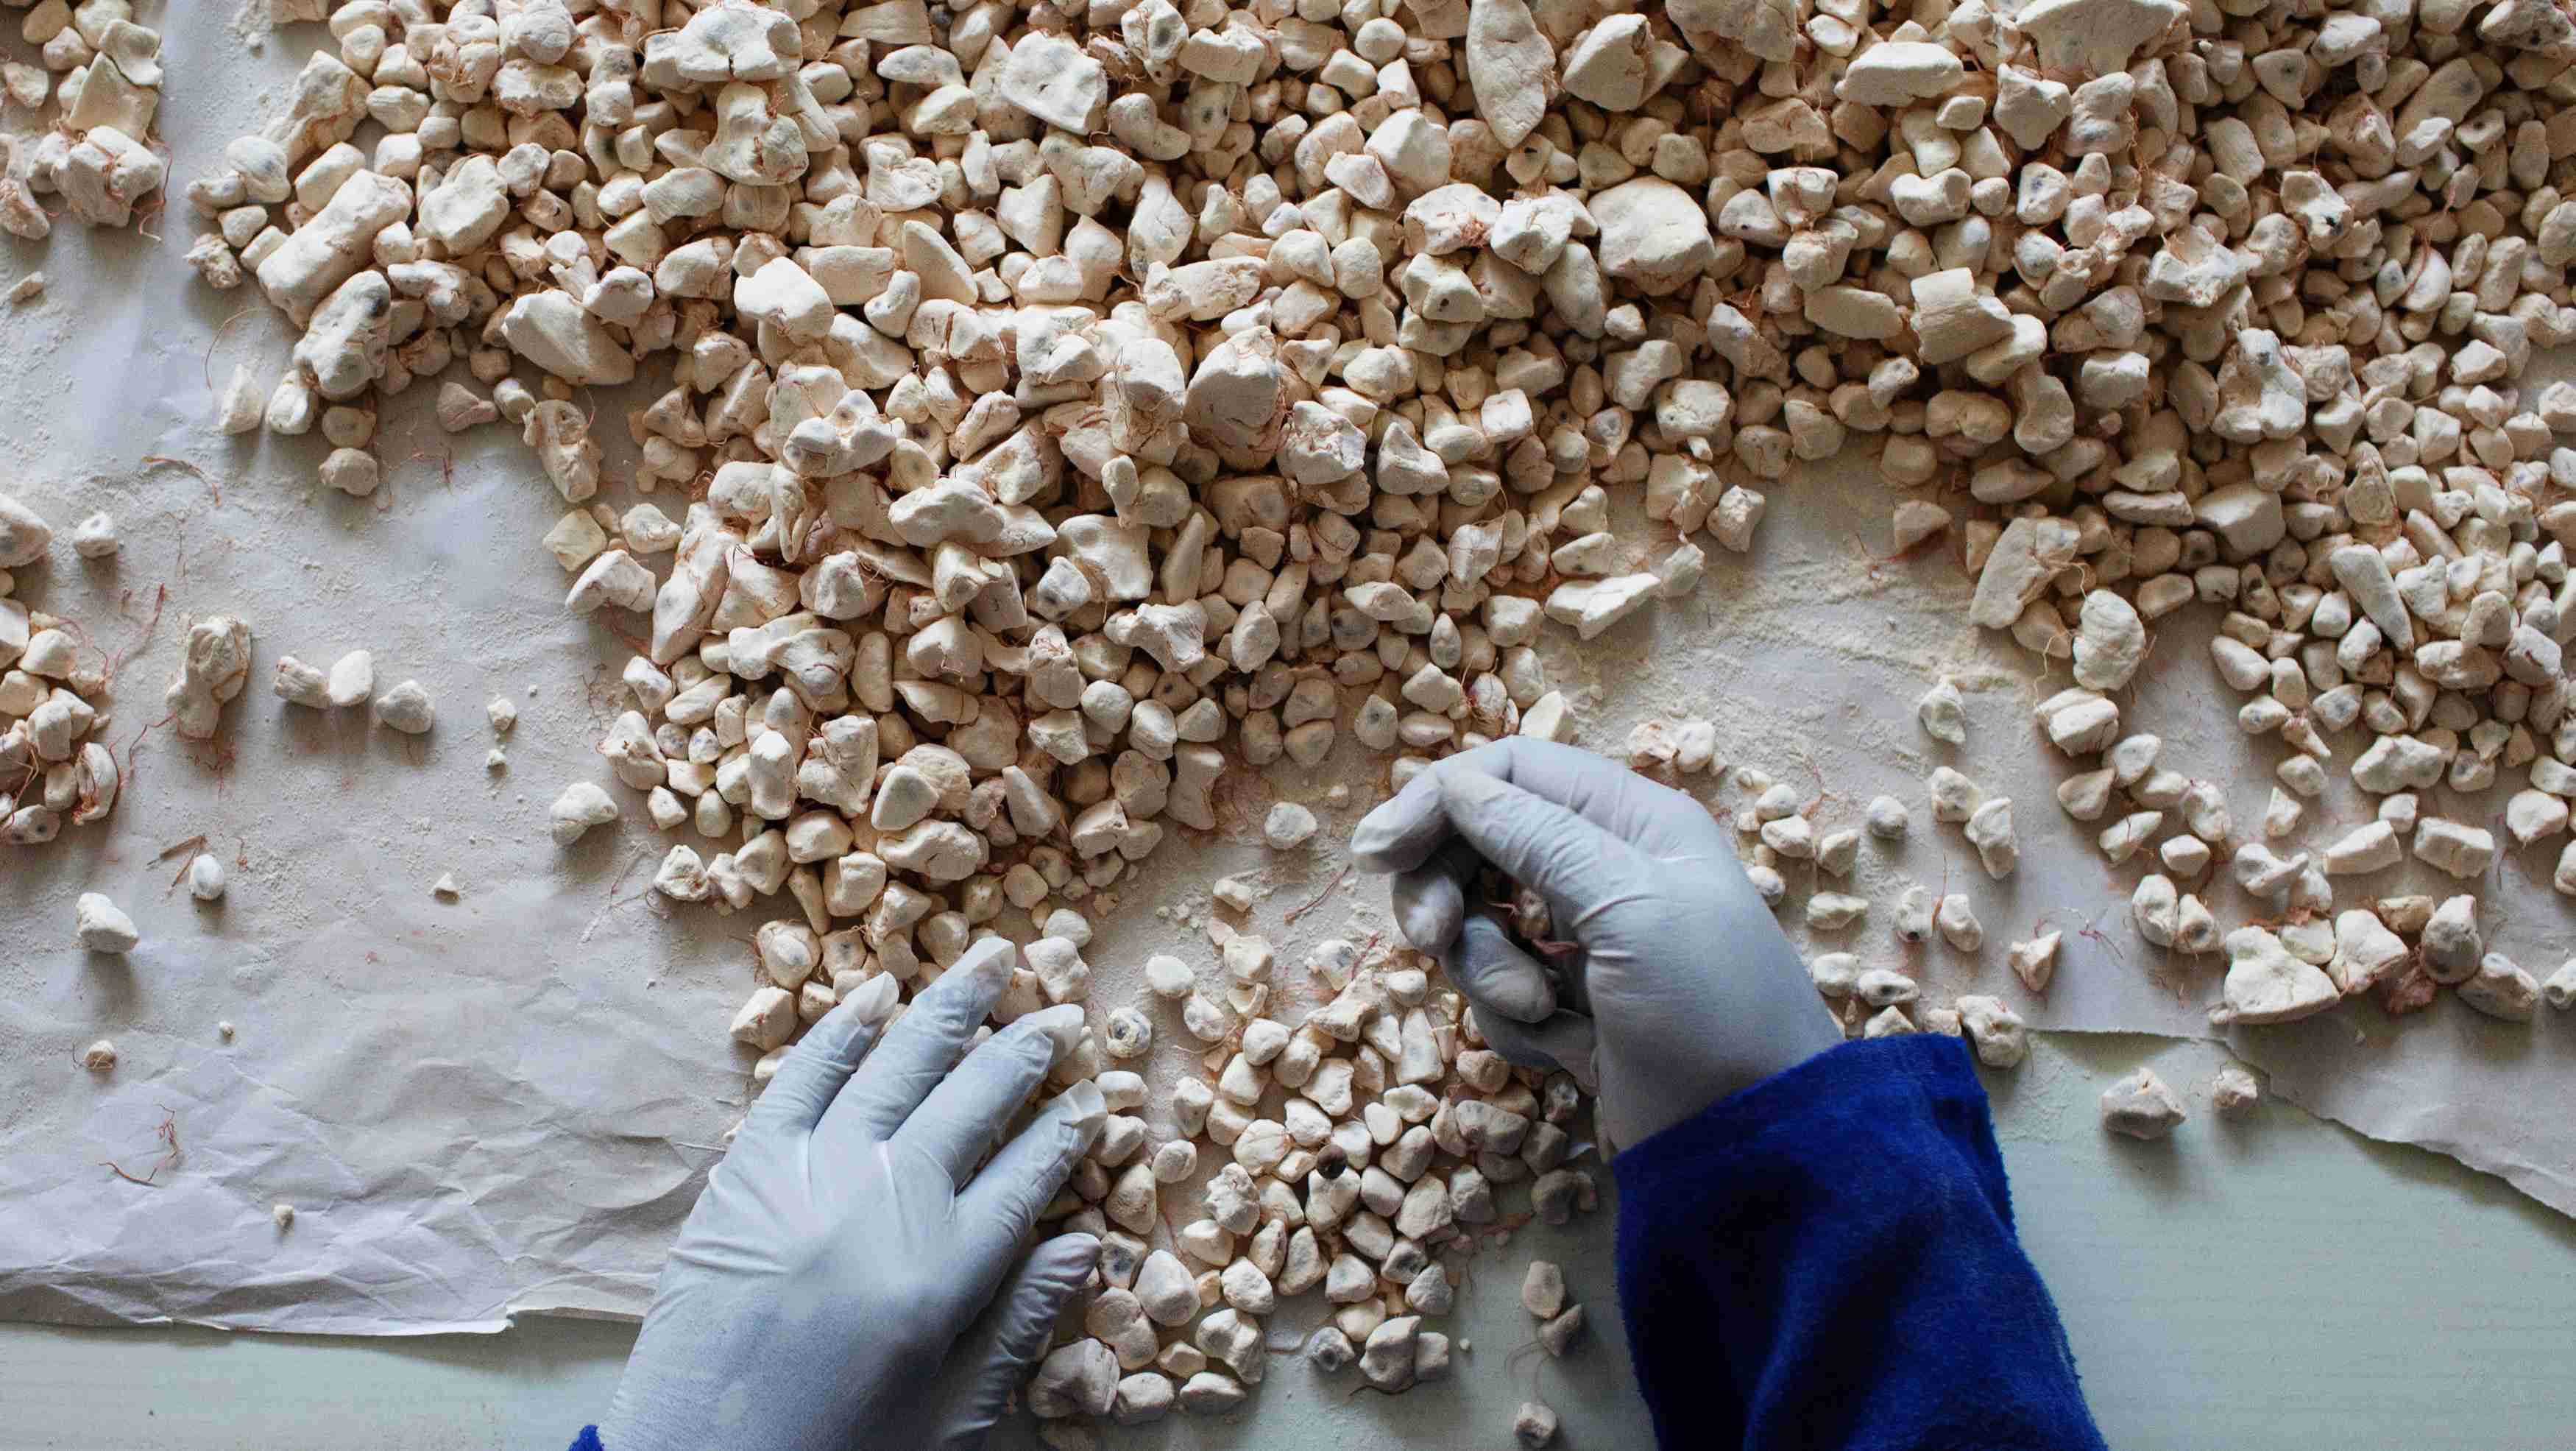 A worker sorts baobab fruit at the Bioessence factory, a cosmetic and nutrition company using baobab and shea products, in Dakar June 19, 2013. Bioessence exports many of its products to the United States. REUTERS/Joe Penney (SENEGAL - Tags: BUSINESS)